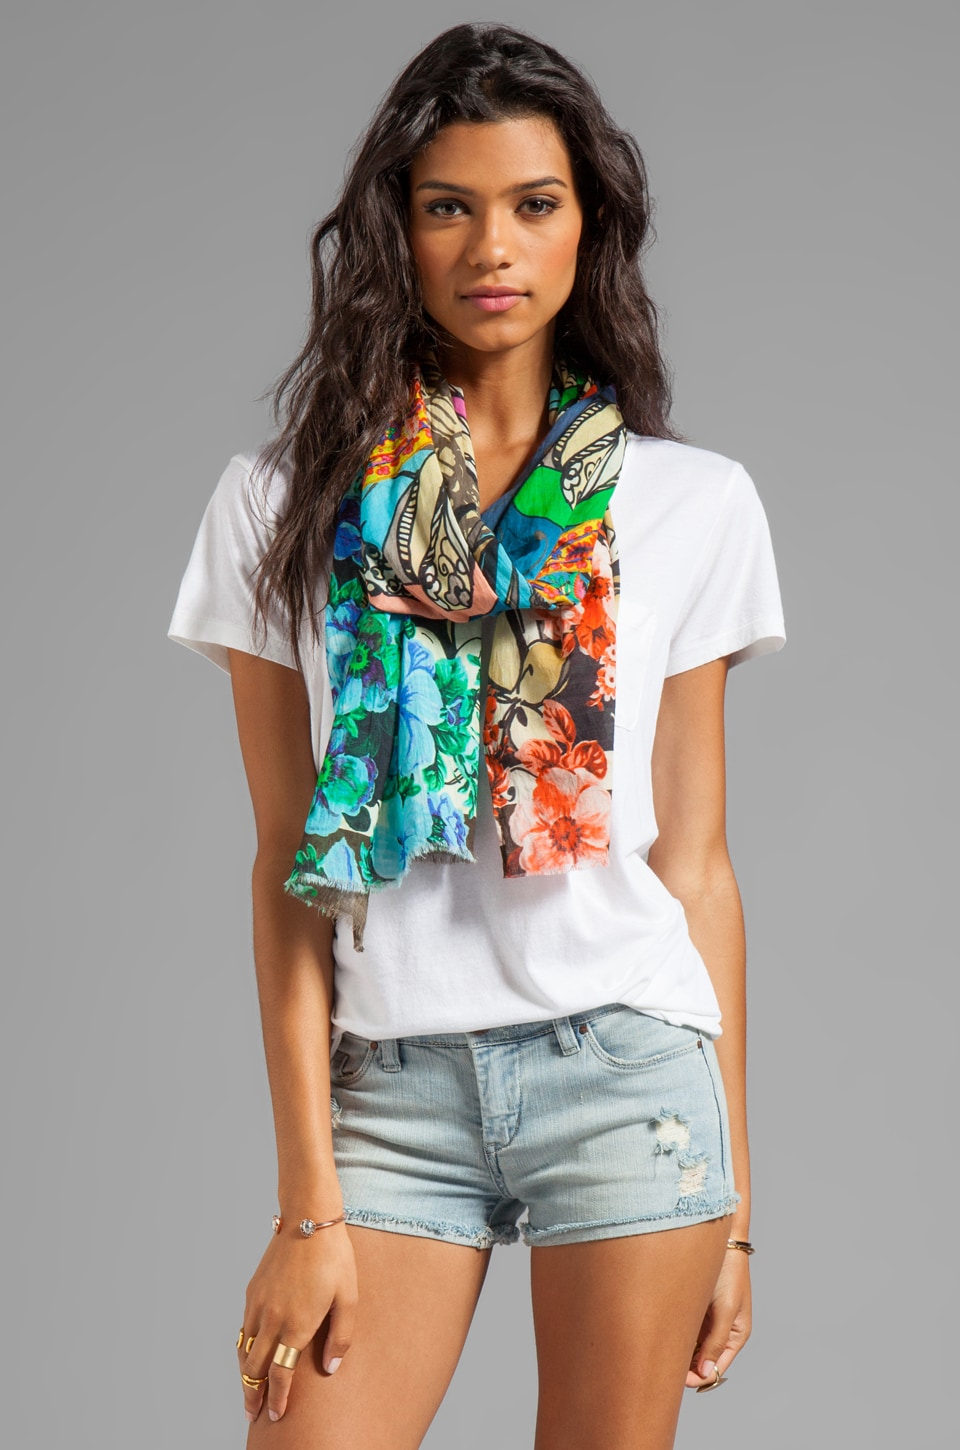 Tolani Scarf in Digital Parrot